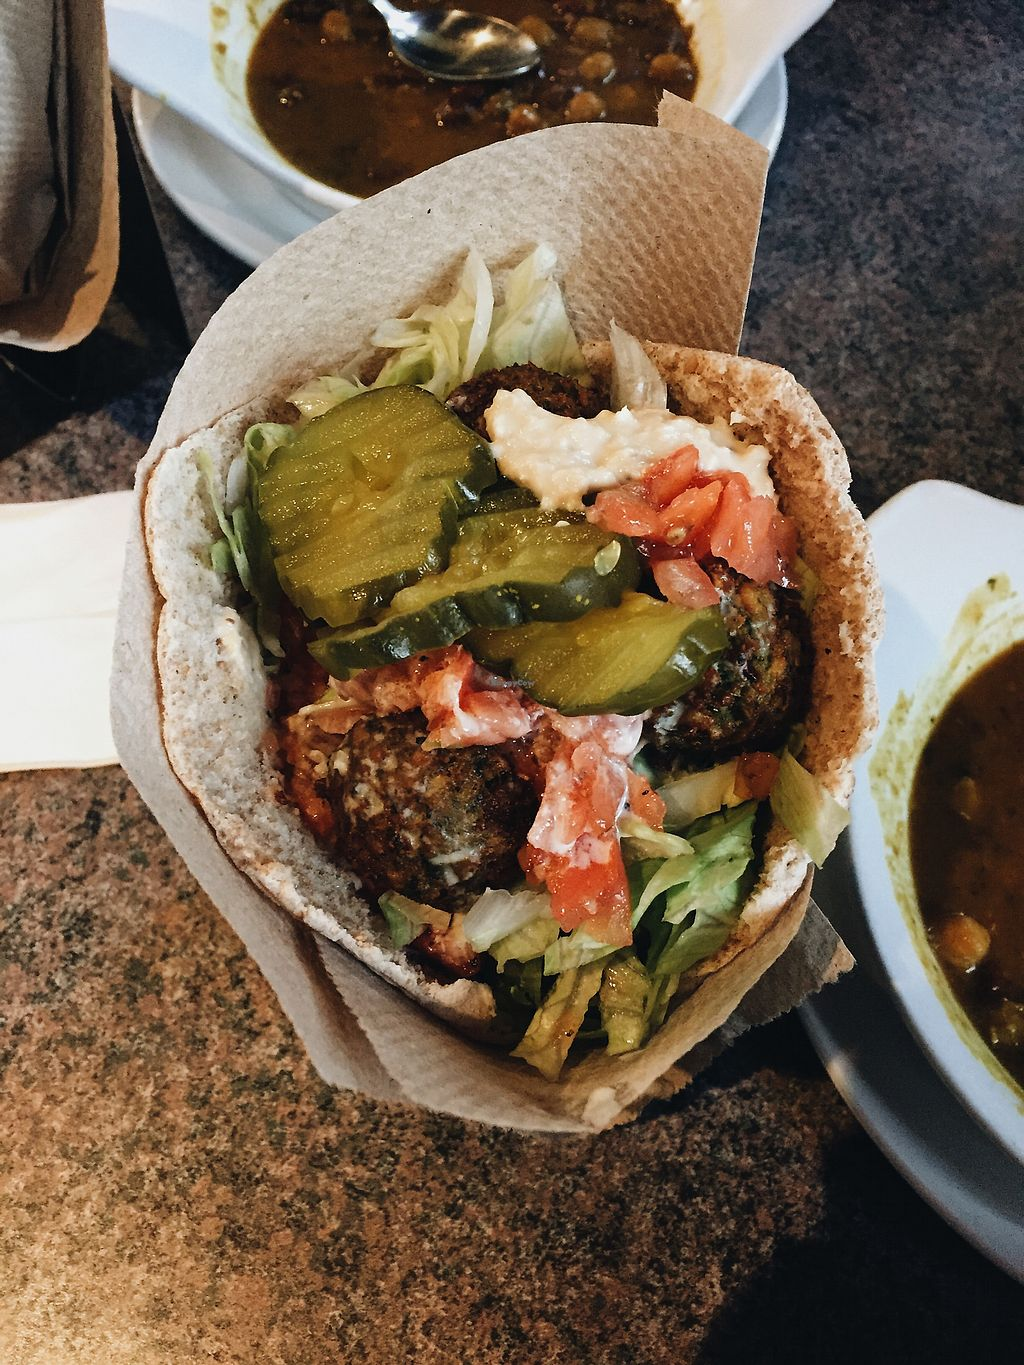 """Photo of Deserts  by <a href=""""/members/profile/Brittanyfm"""">Brittanyfm</a> <br/>Falafel pita <br/> December 4, 2017  - <a href='/contact/abuse/image/4450/332324'>Report</a>"""